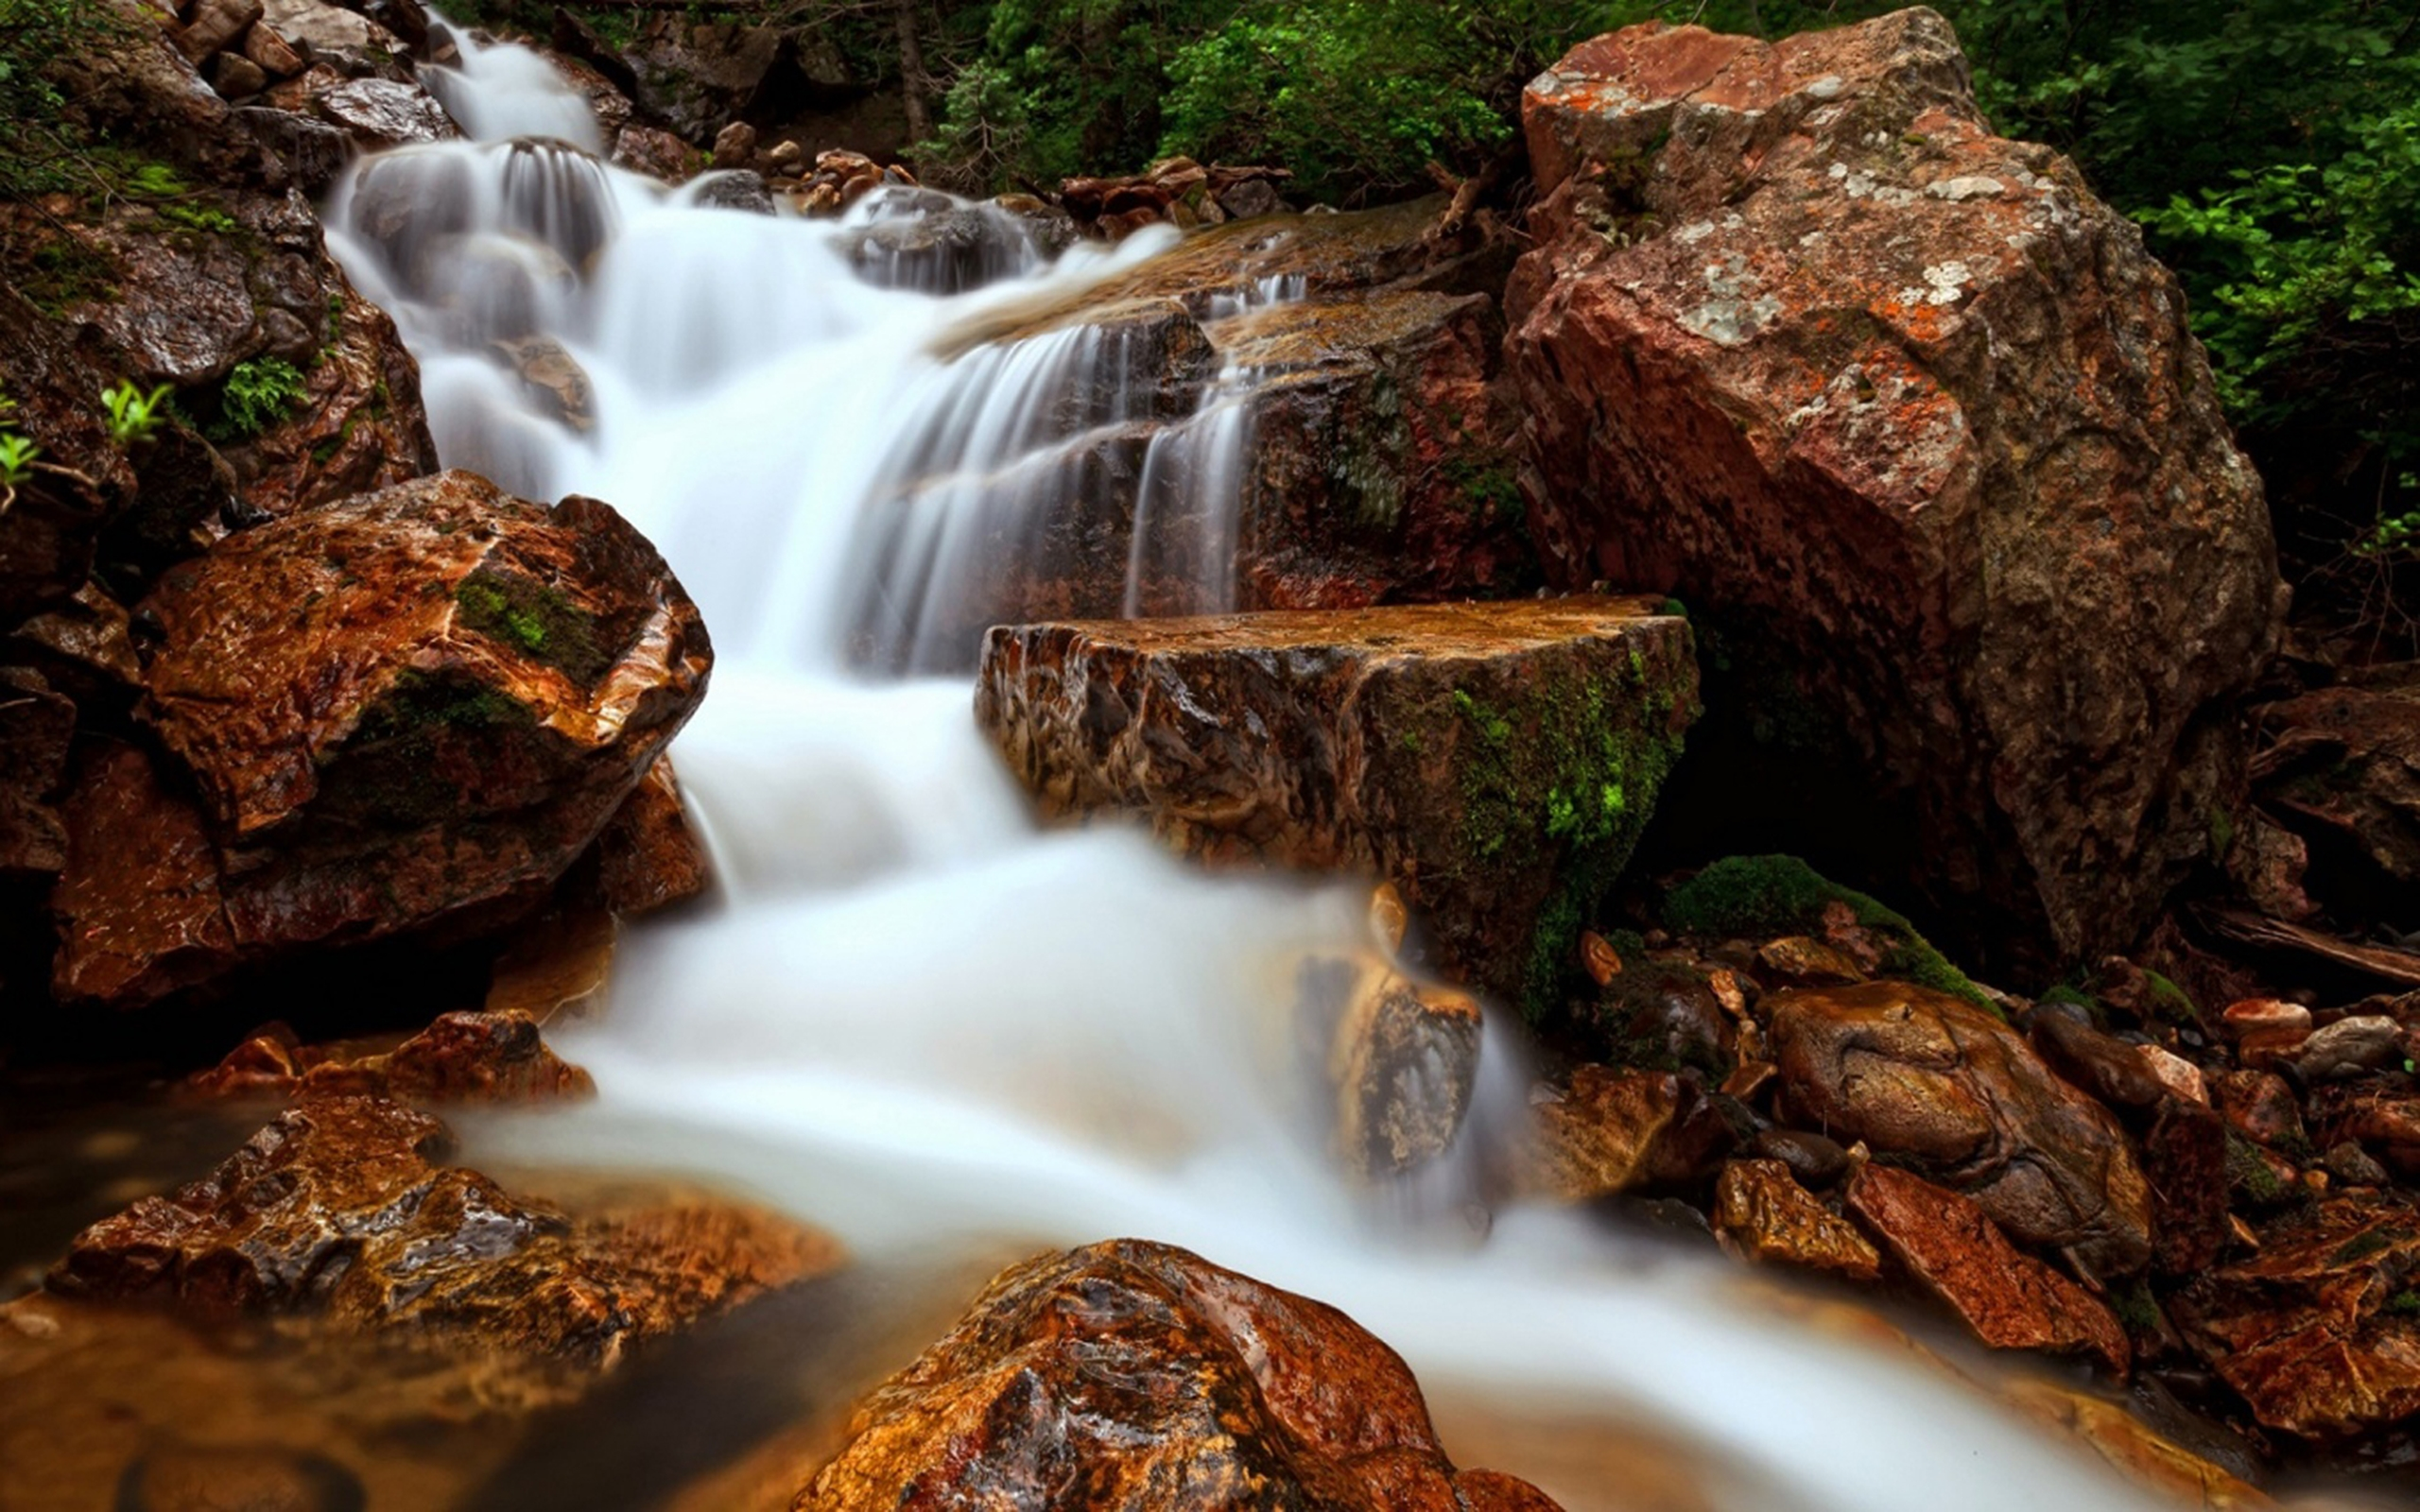 Majestic Fall Wallpaper Waterfall Flow Water Rock Beautiful Hd Wallpaper